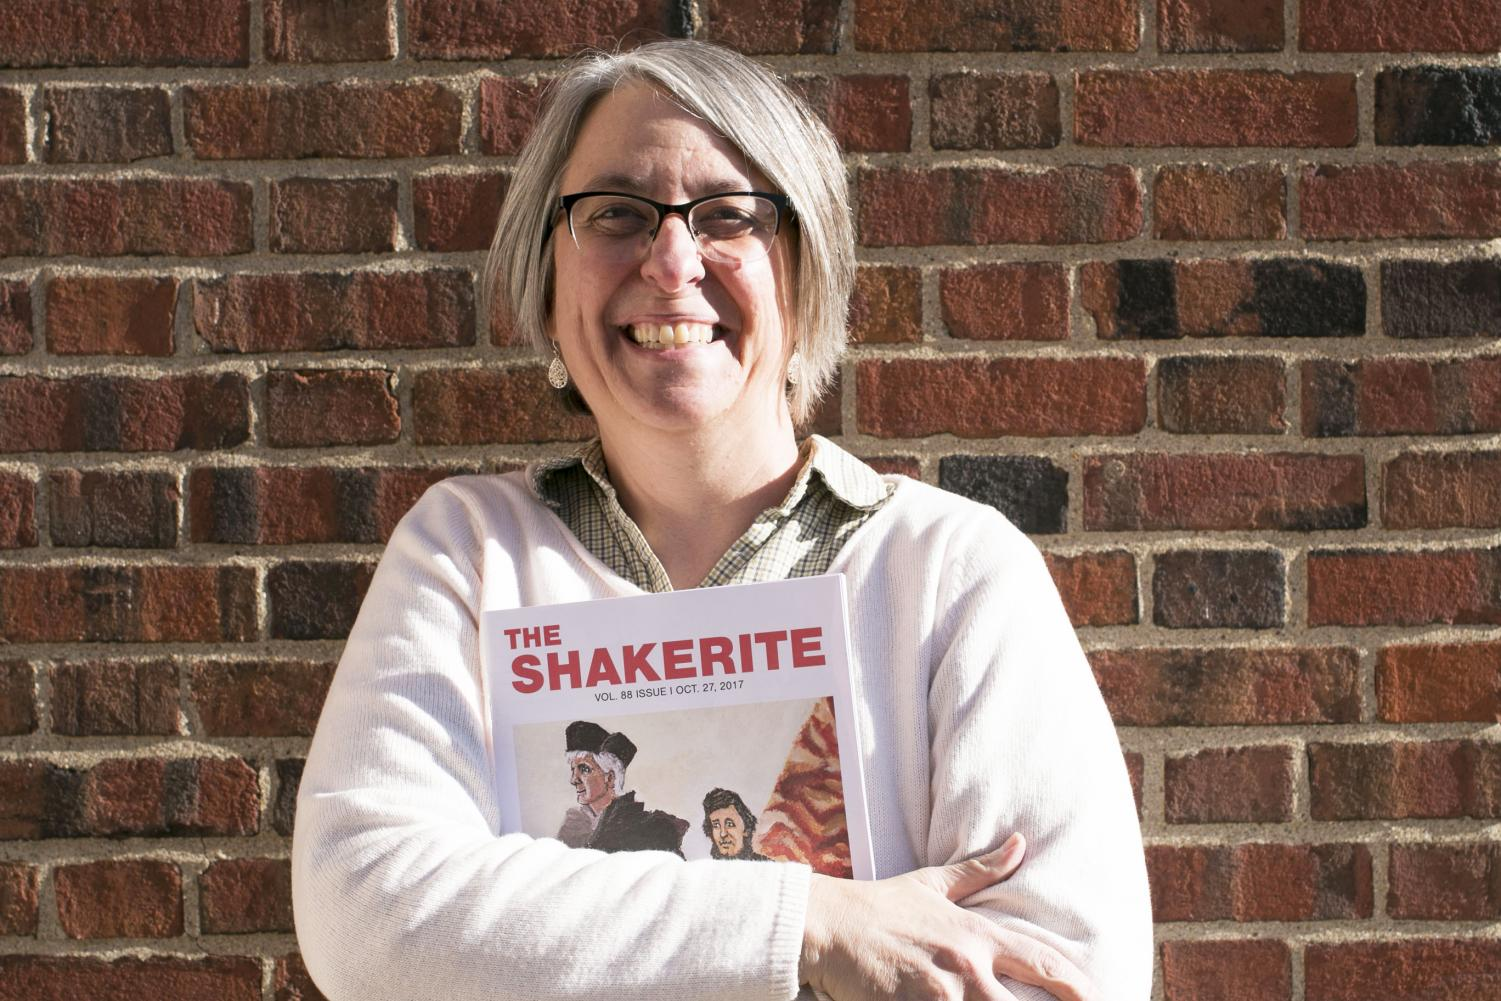 Shakerite Adviser and English teacher Natalie Sekicky and Shaker Heights High School will each be awarded $5,000 as part of Sekicky's 2018 Northwestern University Distinguished Secondary Teacher Award.